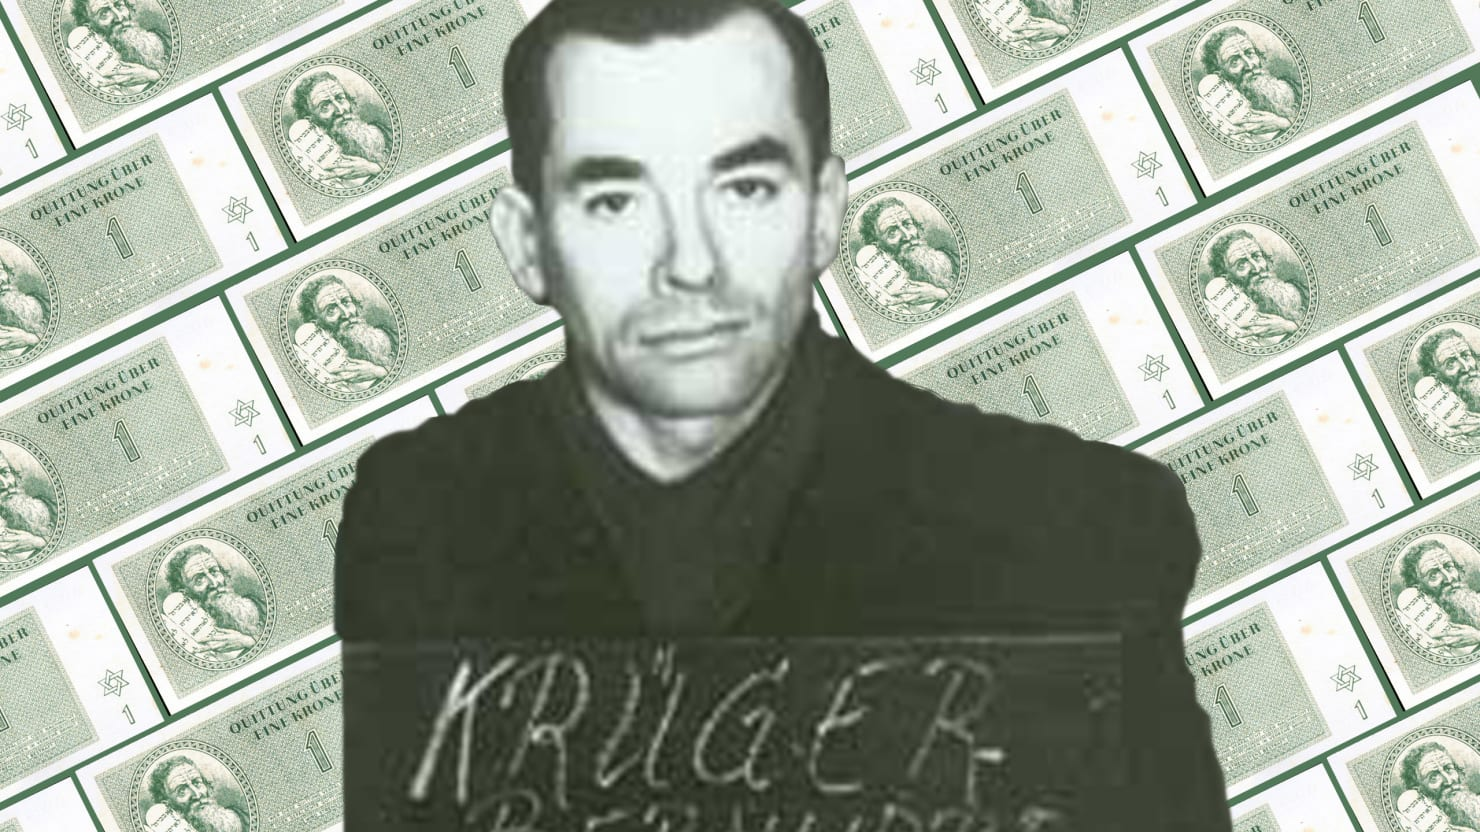 The best counterfeiter of the USSR